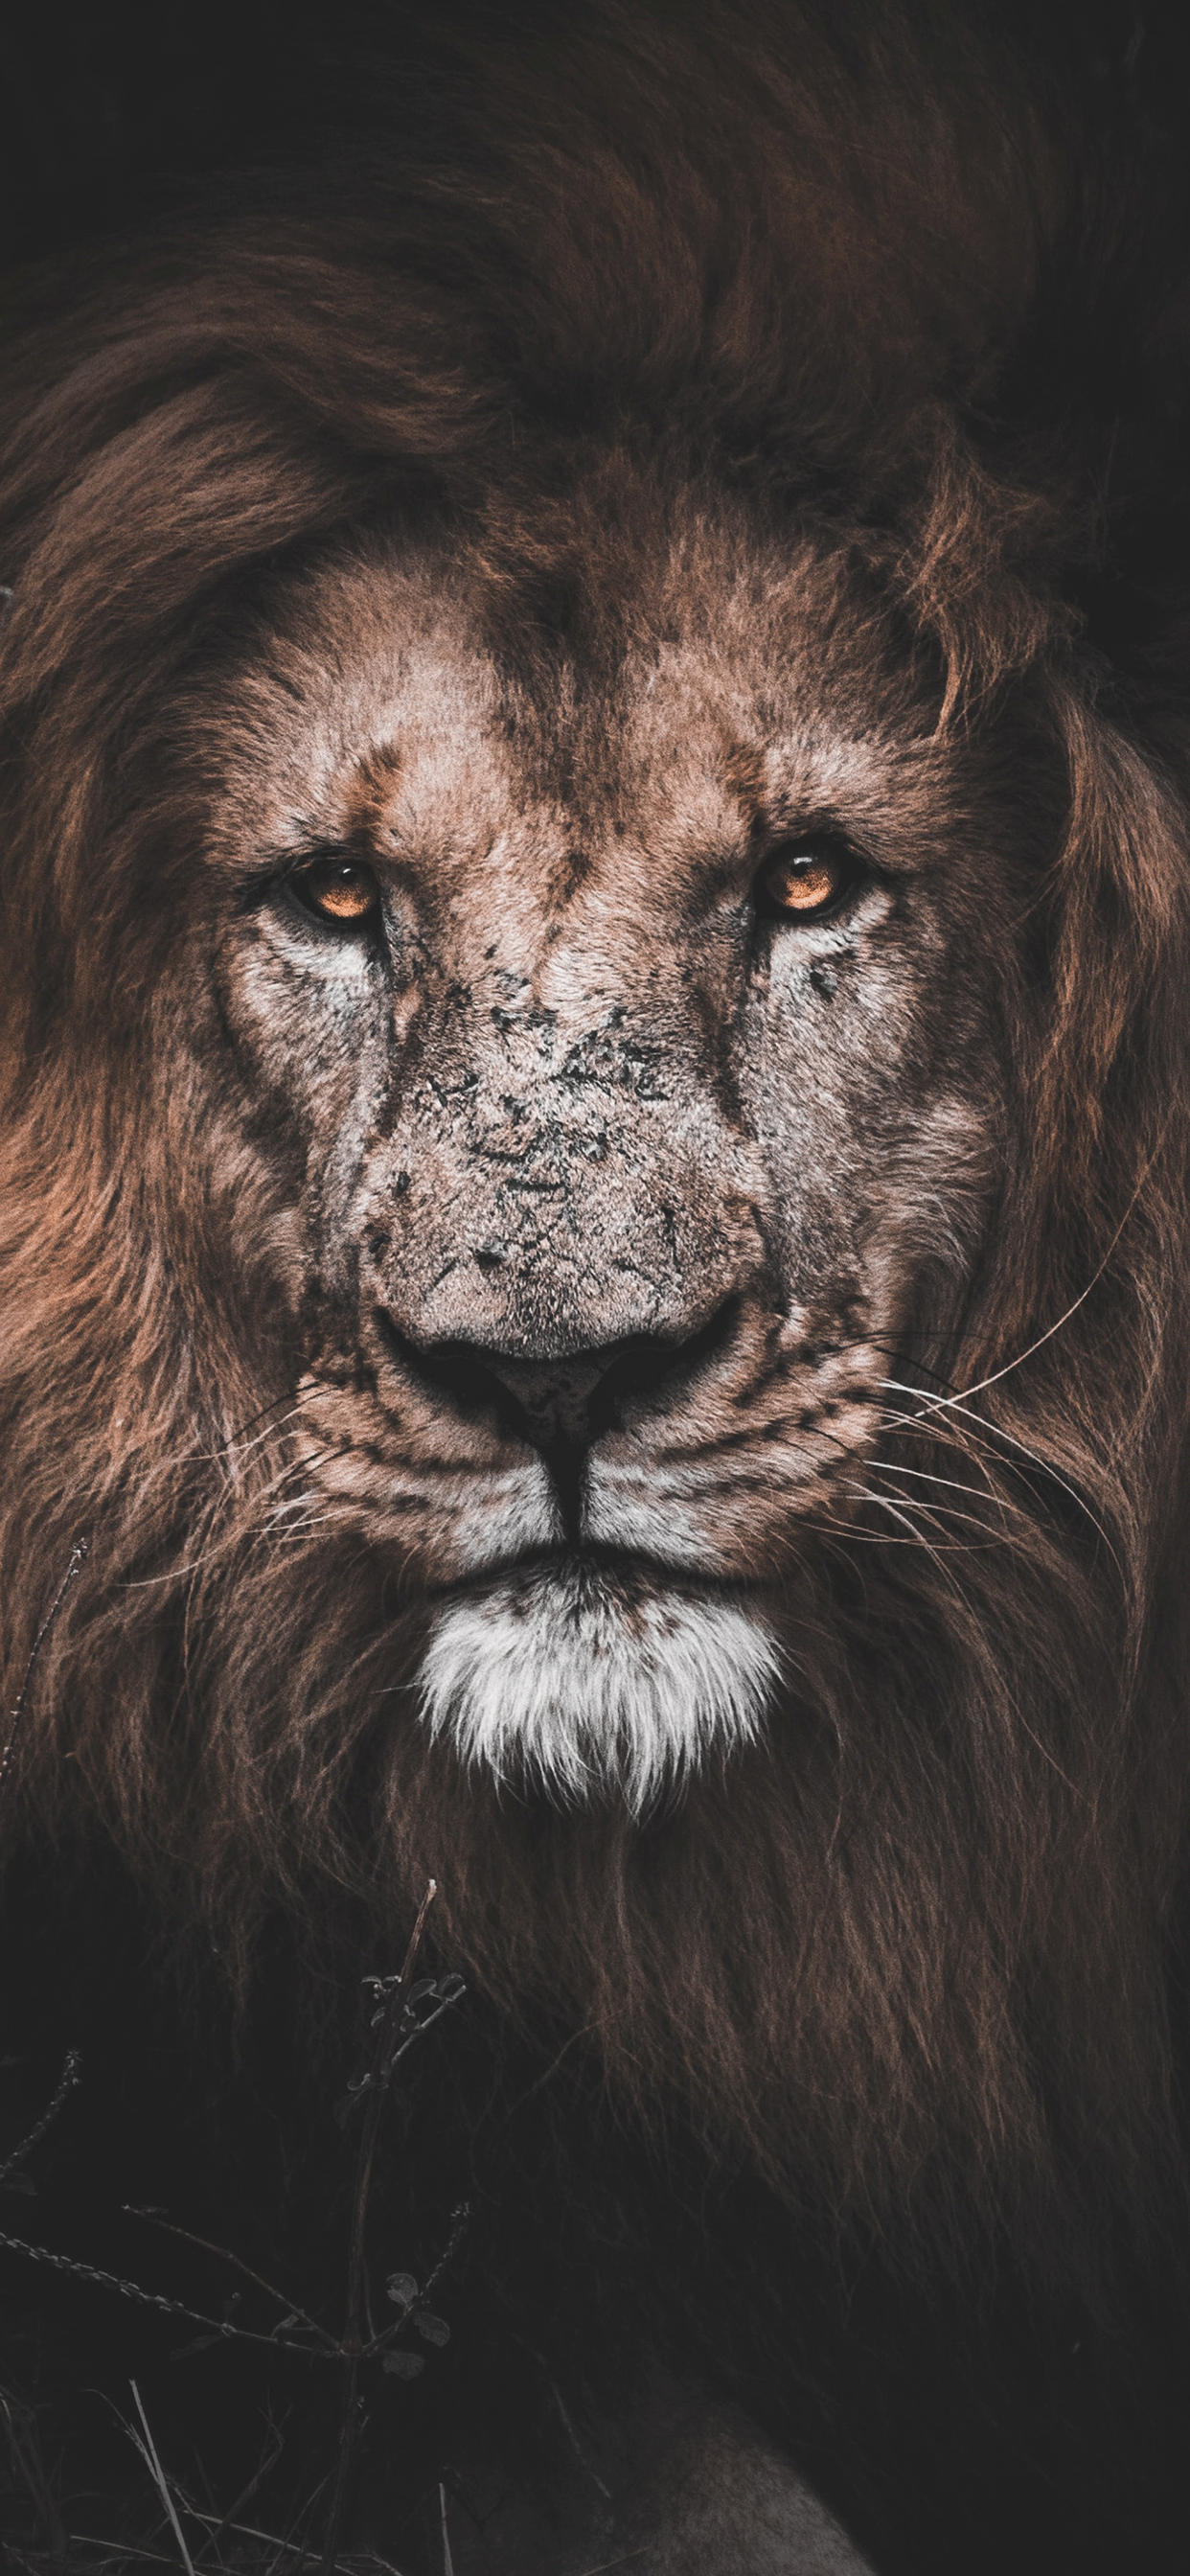 iPhone wallpaper lion mauritius Fonds d'écran iPhone du 09/07/2019